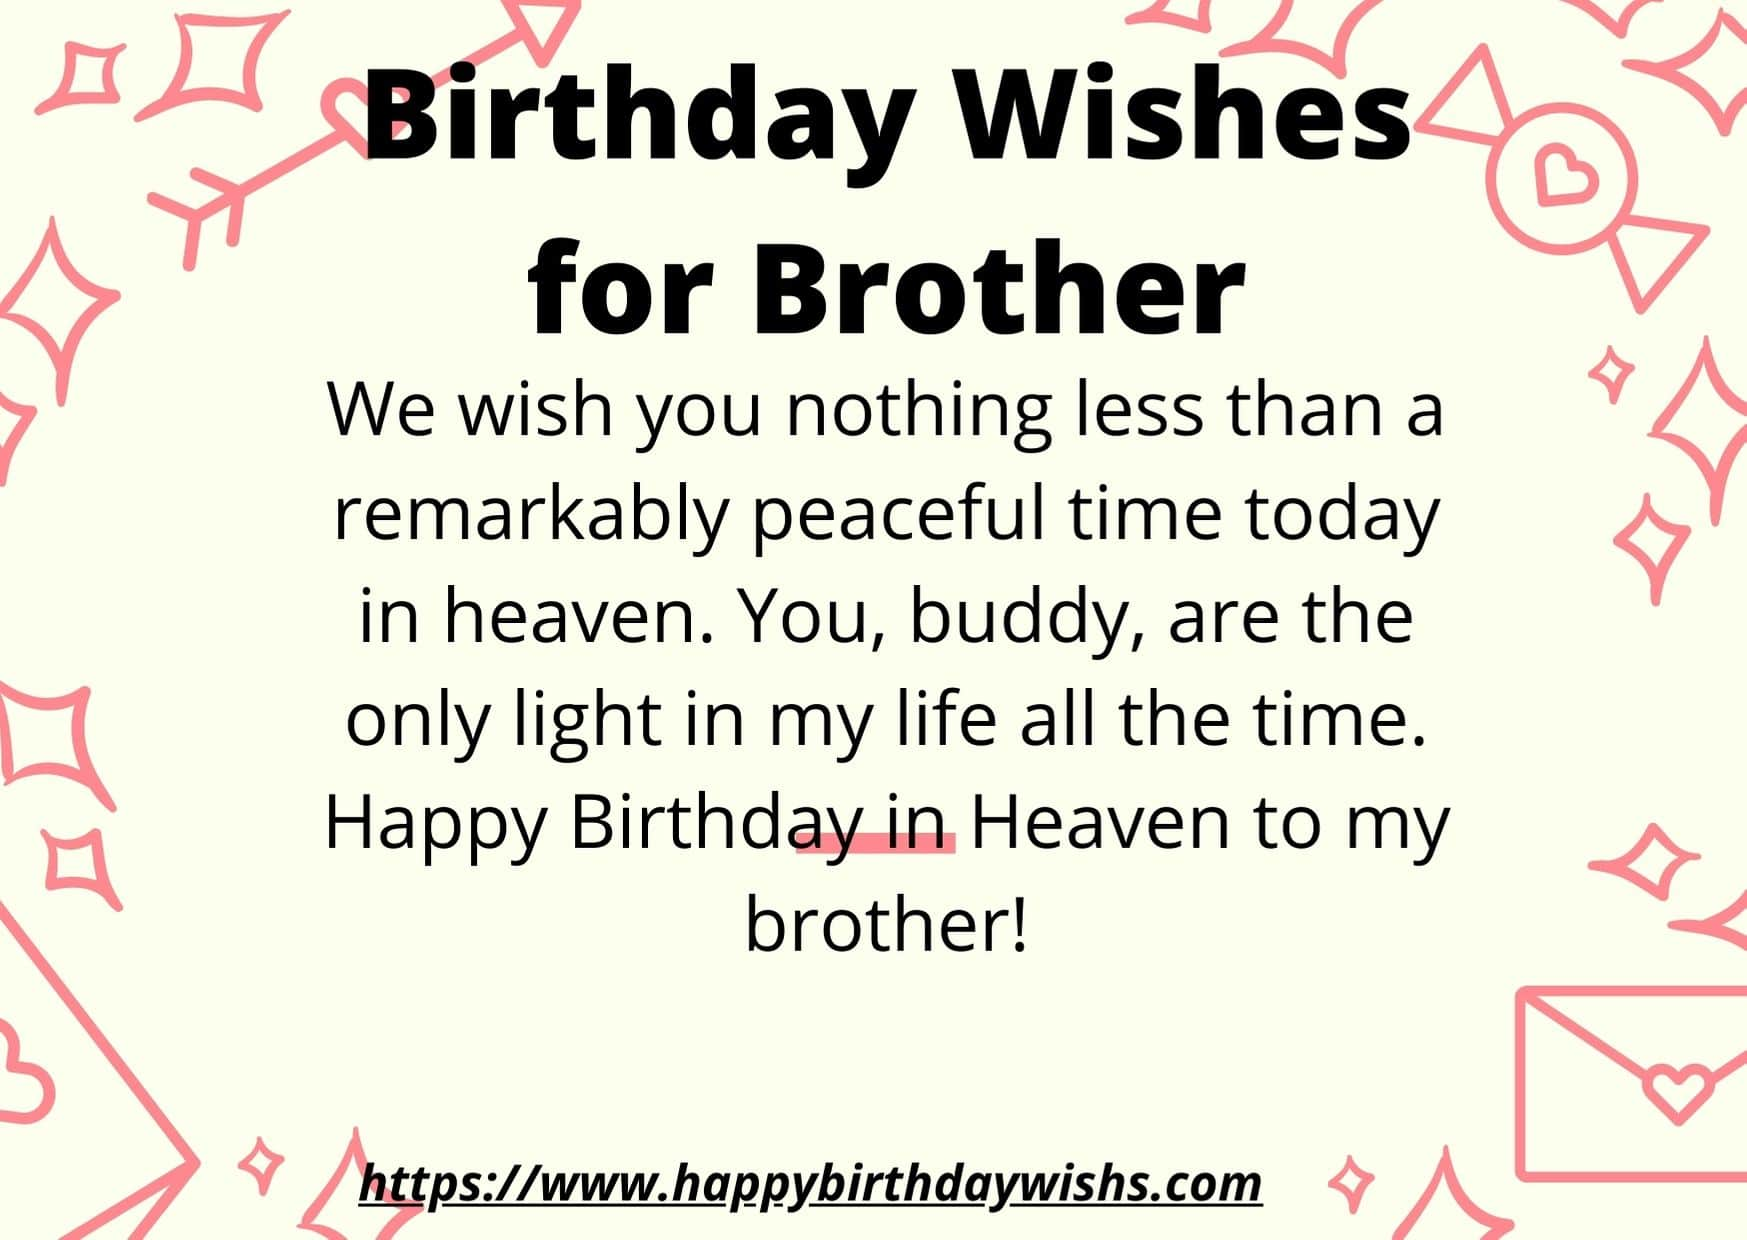 deceased brother happy birthday in heaven brother